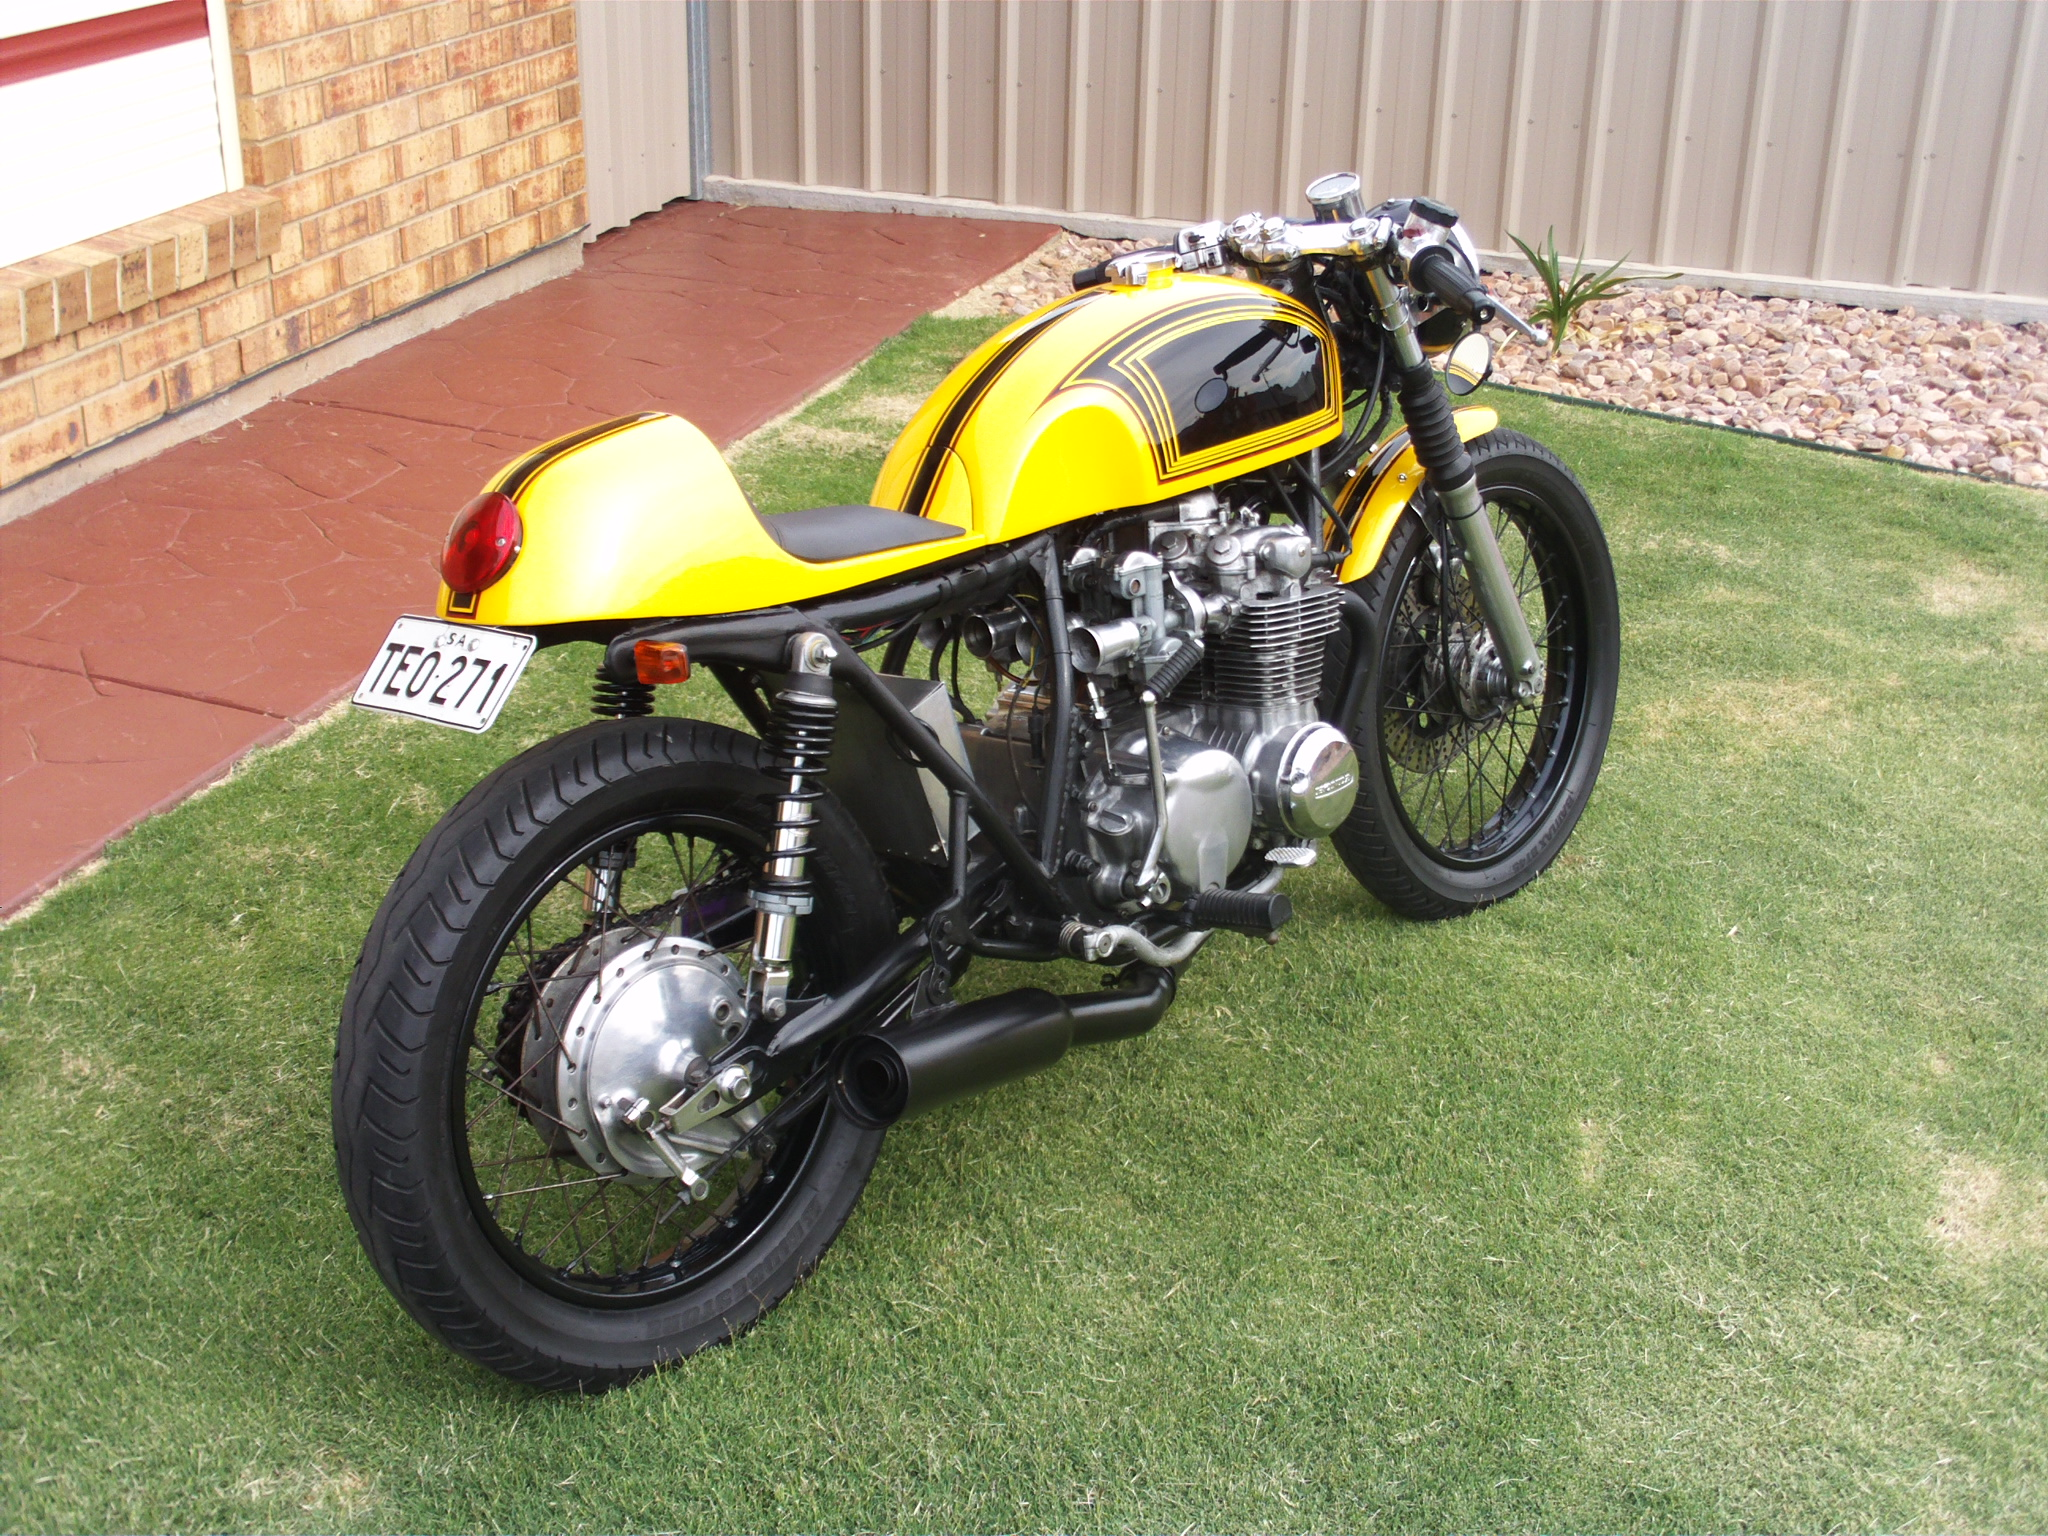 At The Monday Morning Cafe A Nice 1977 Cb550k Motorcycle Photo Of